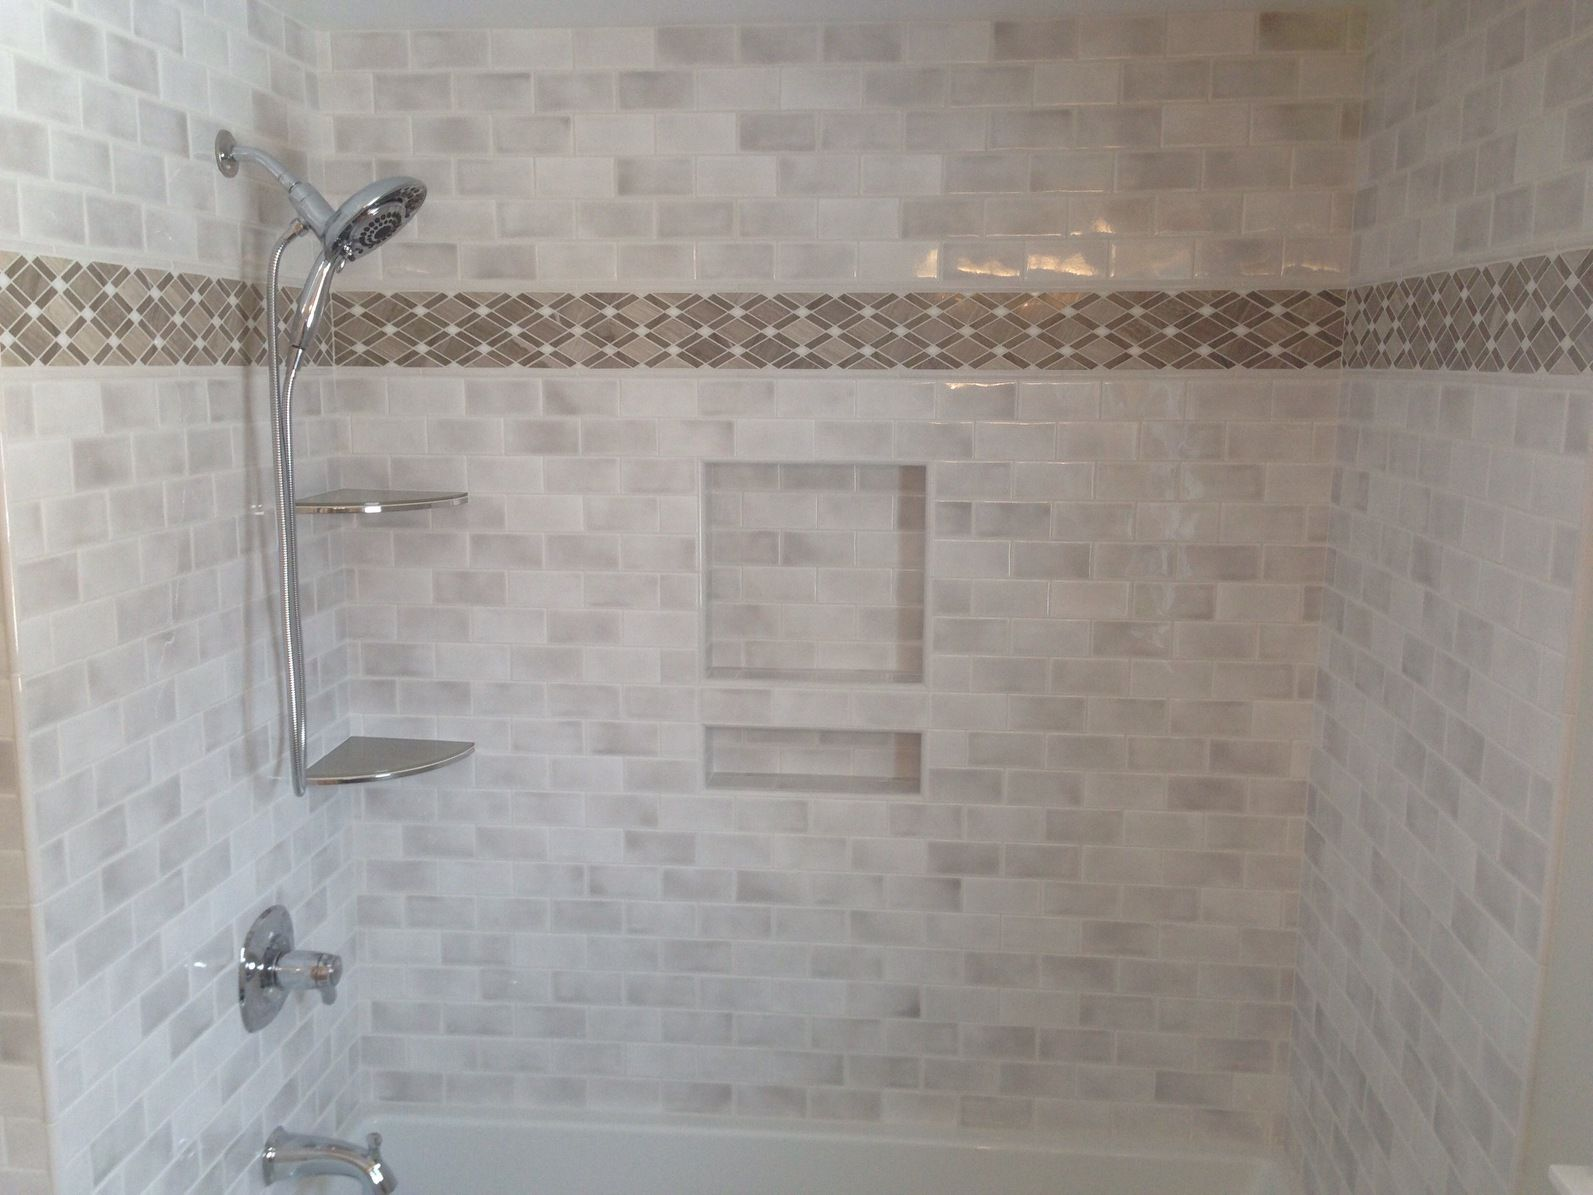 Custom tub surround featuring a traditional 3x6 subway tile with custom tub surround featuring a traditional 3x6 subway tile with stone mosaic for dailygadgetfo Choice Image